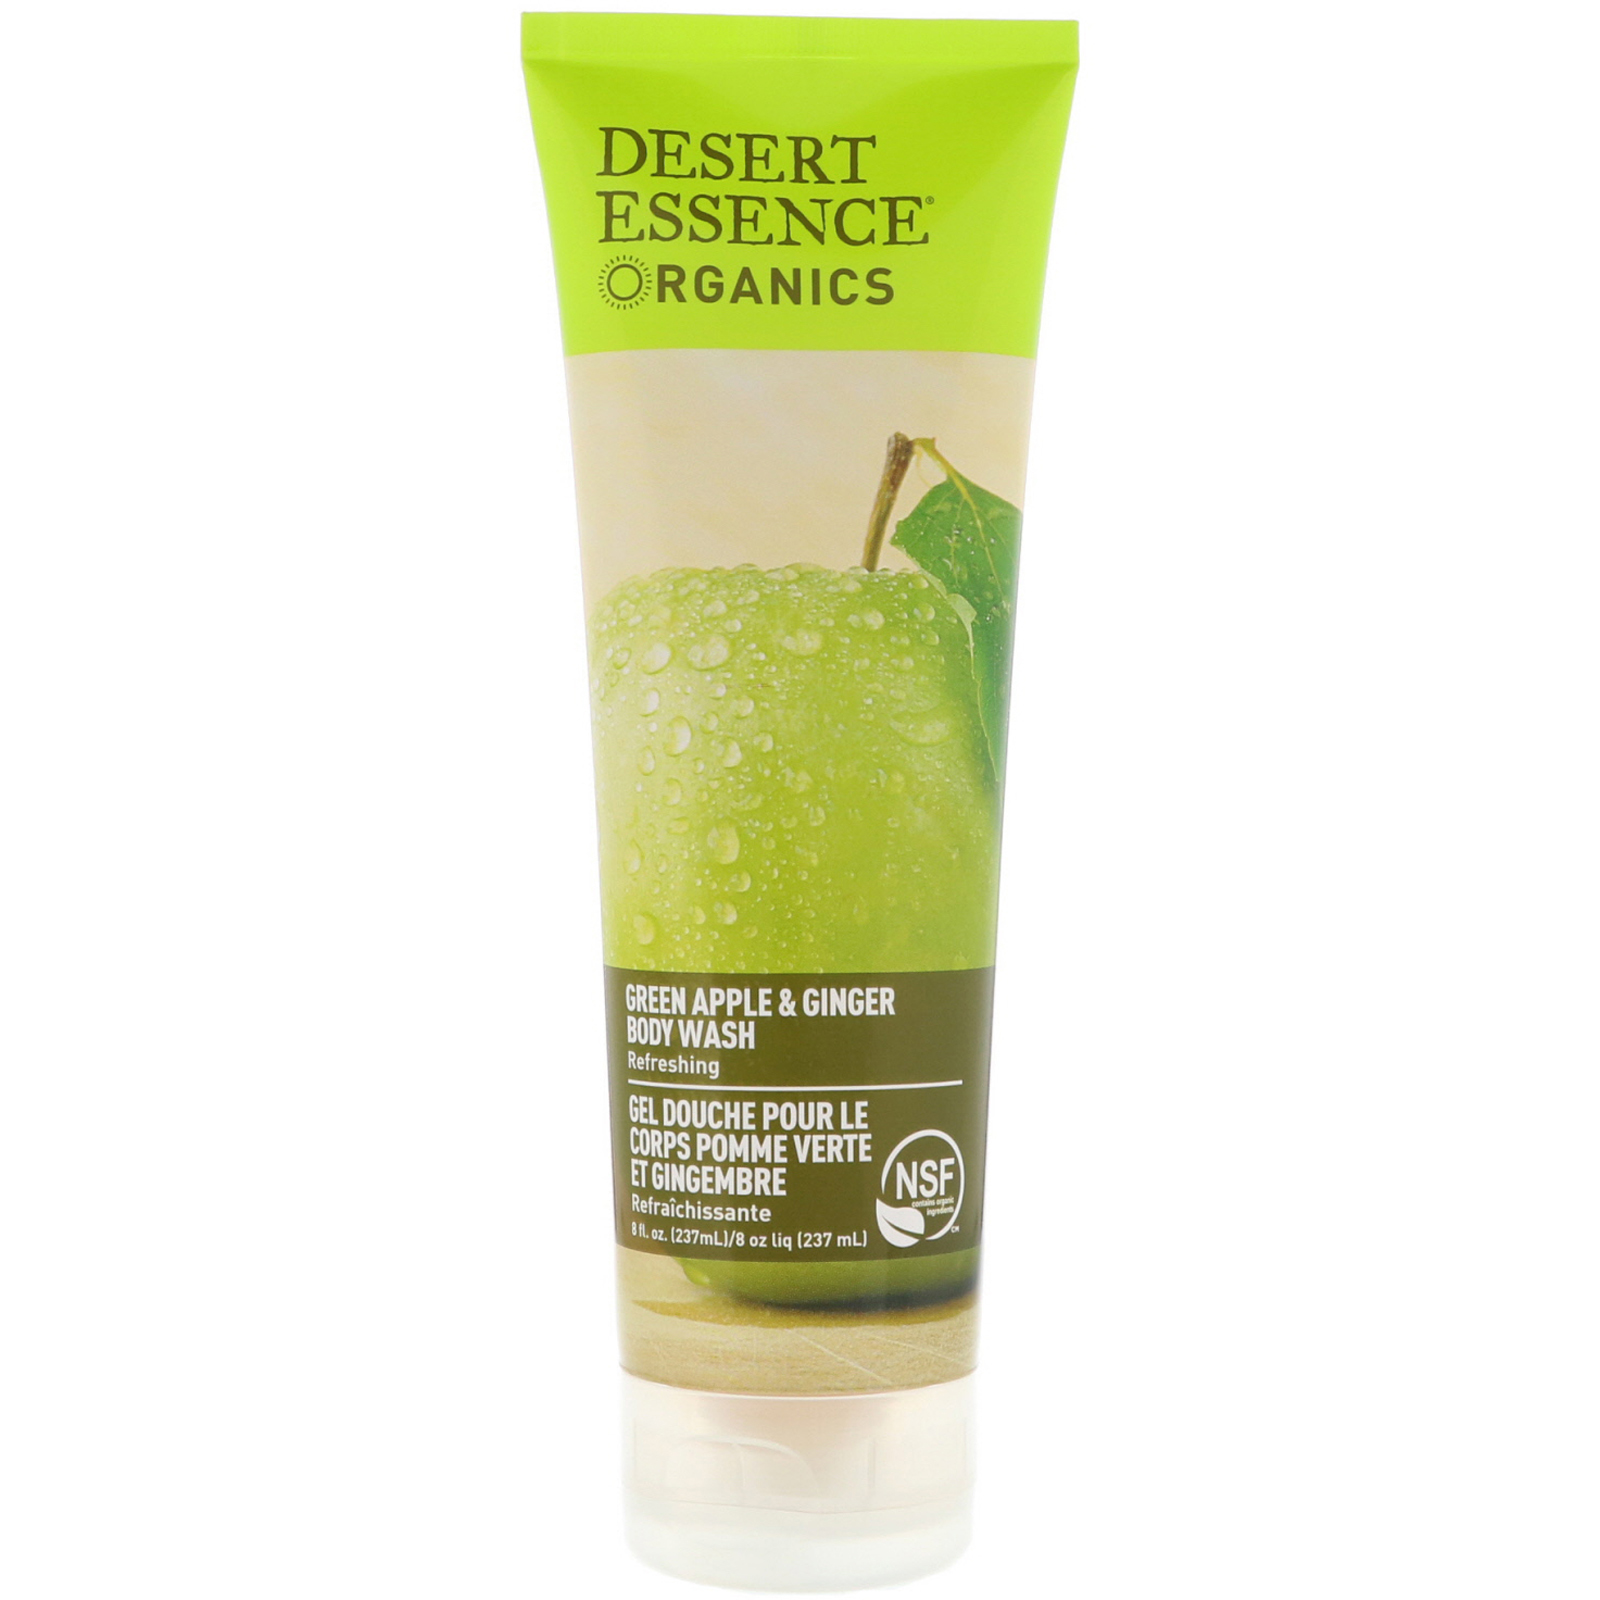 Desert Essence Organics Body Wash Green Apple Ginger 8 Fl Oz Aromatherapy Orange